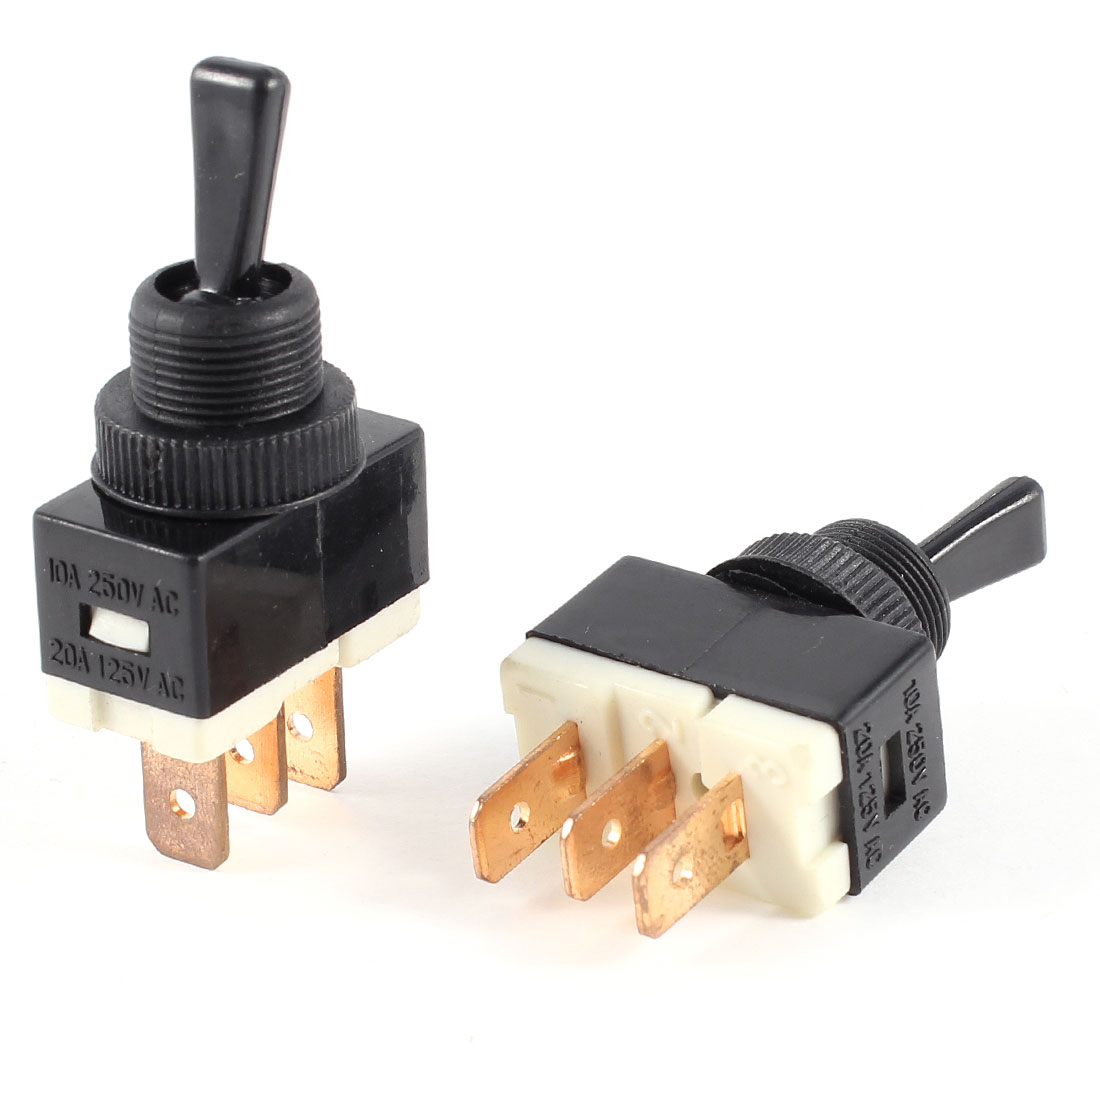 20A/125VAC 10A/250VAC 3 Poles SPDT On/On 2 Position Latching Toggle Switch 2 Pcs